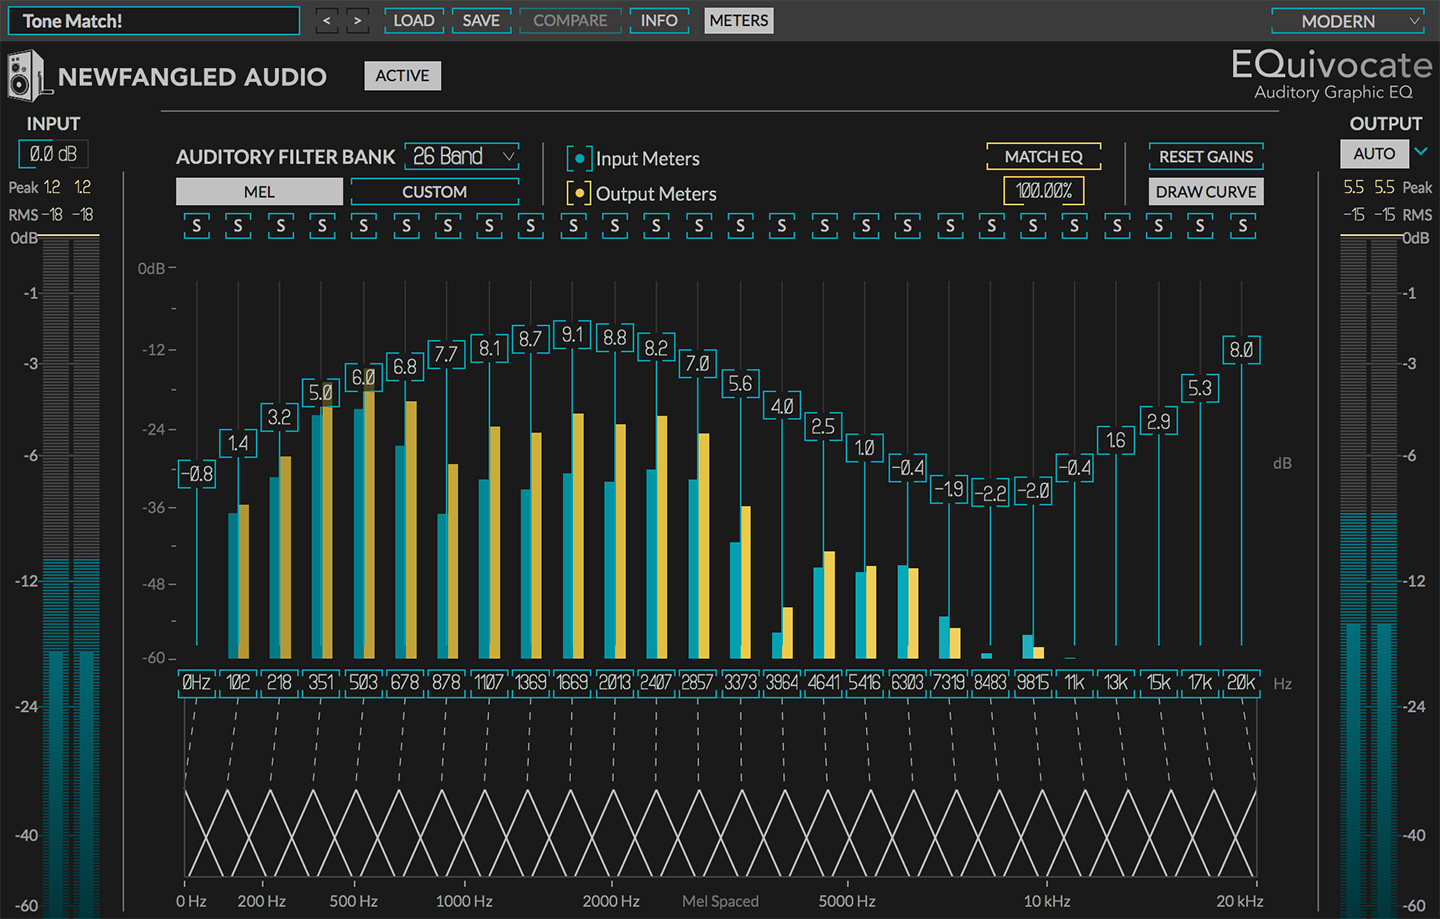 EQuivocate | Eventide Newfangled Audio Multi Band EQ